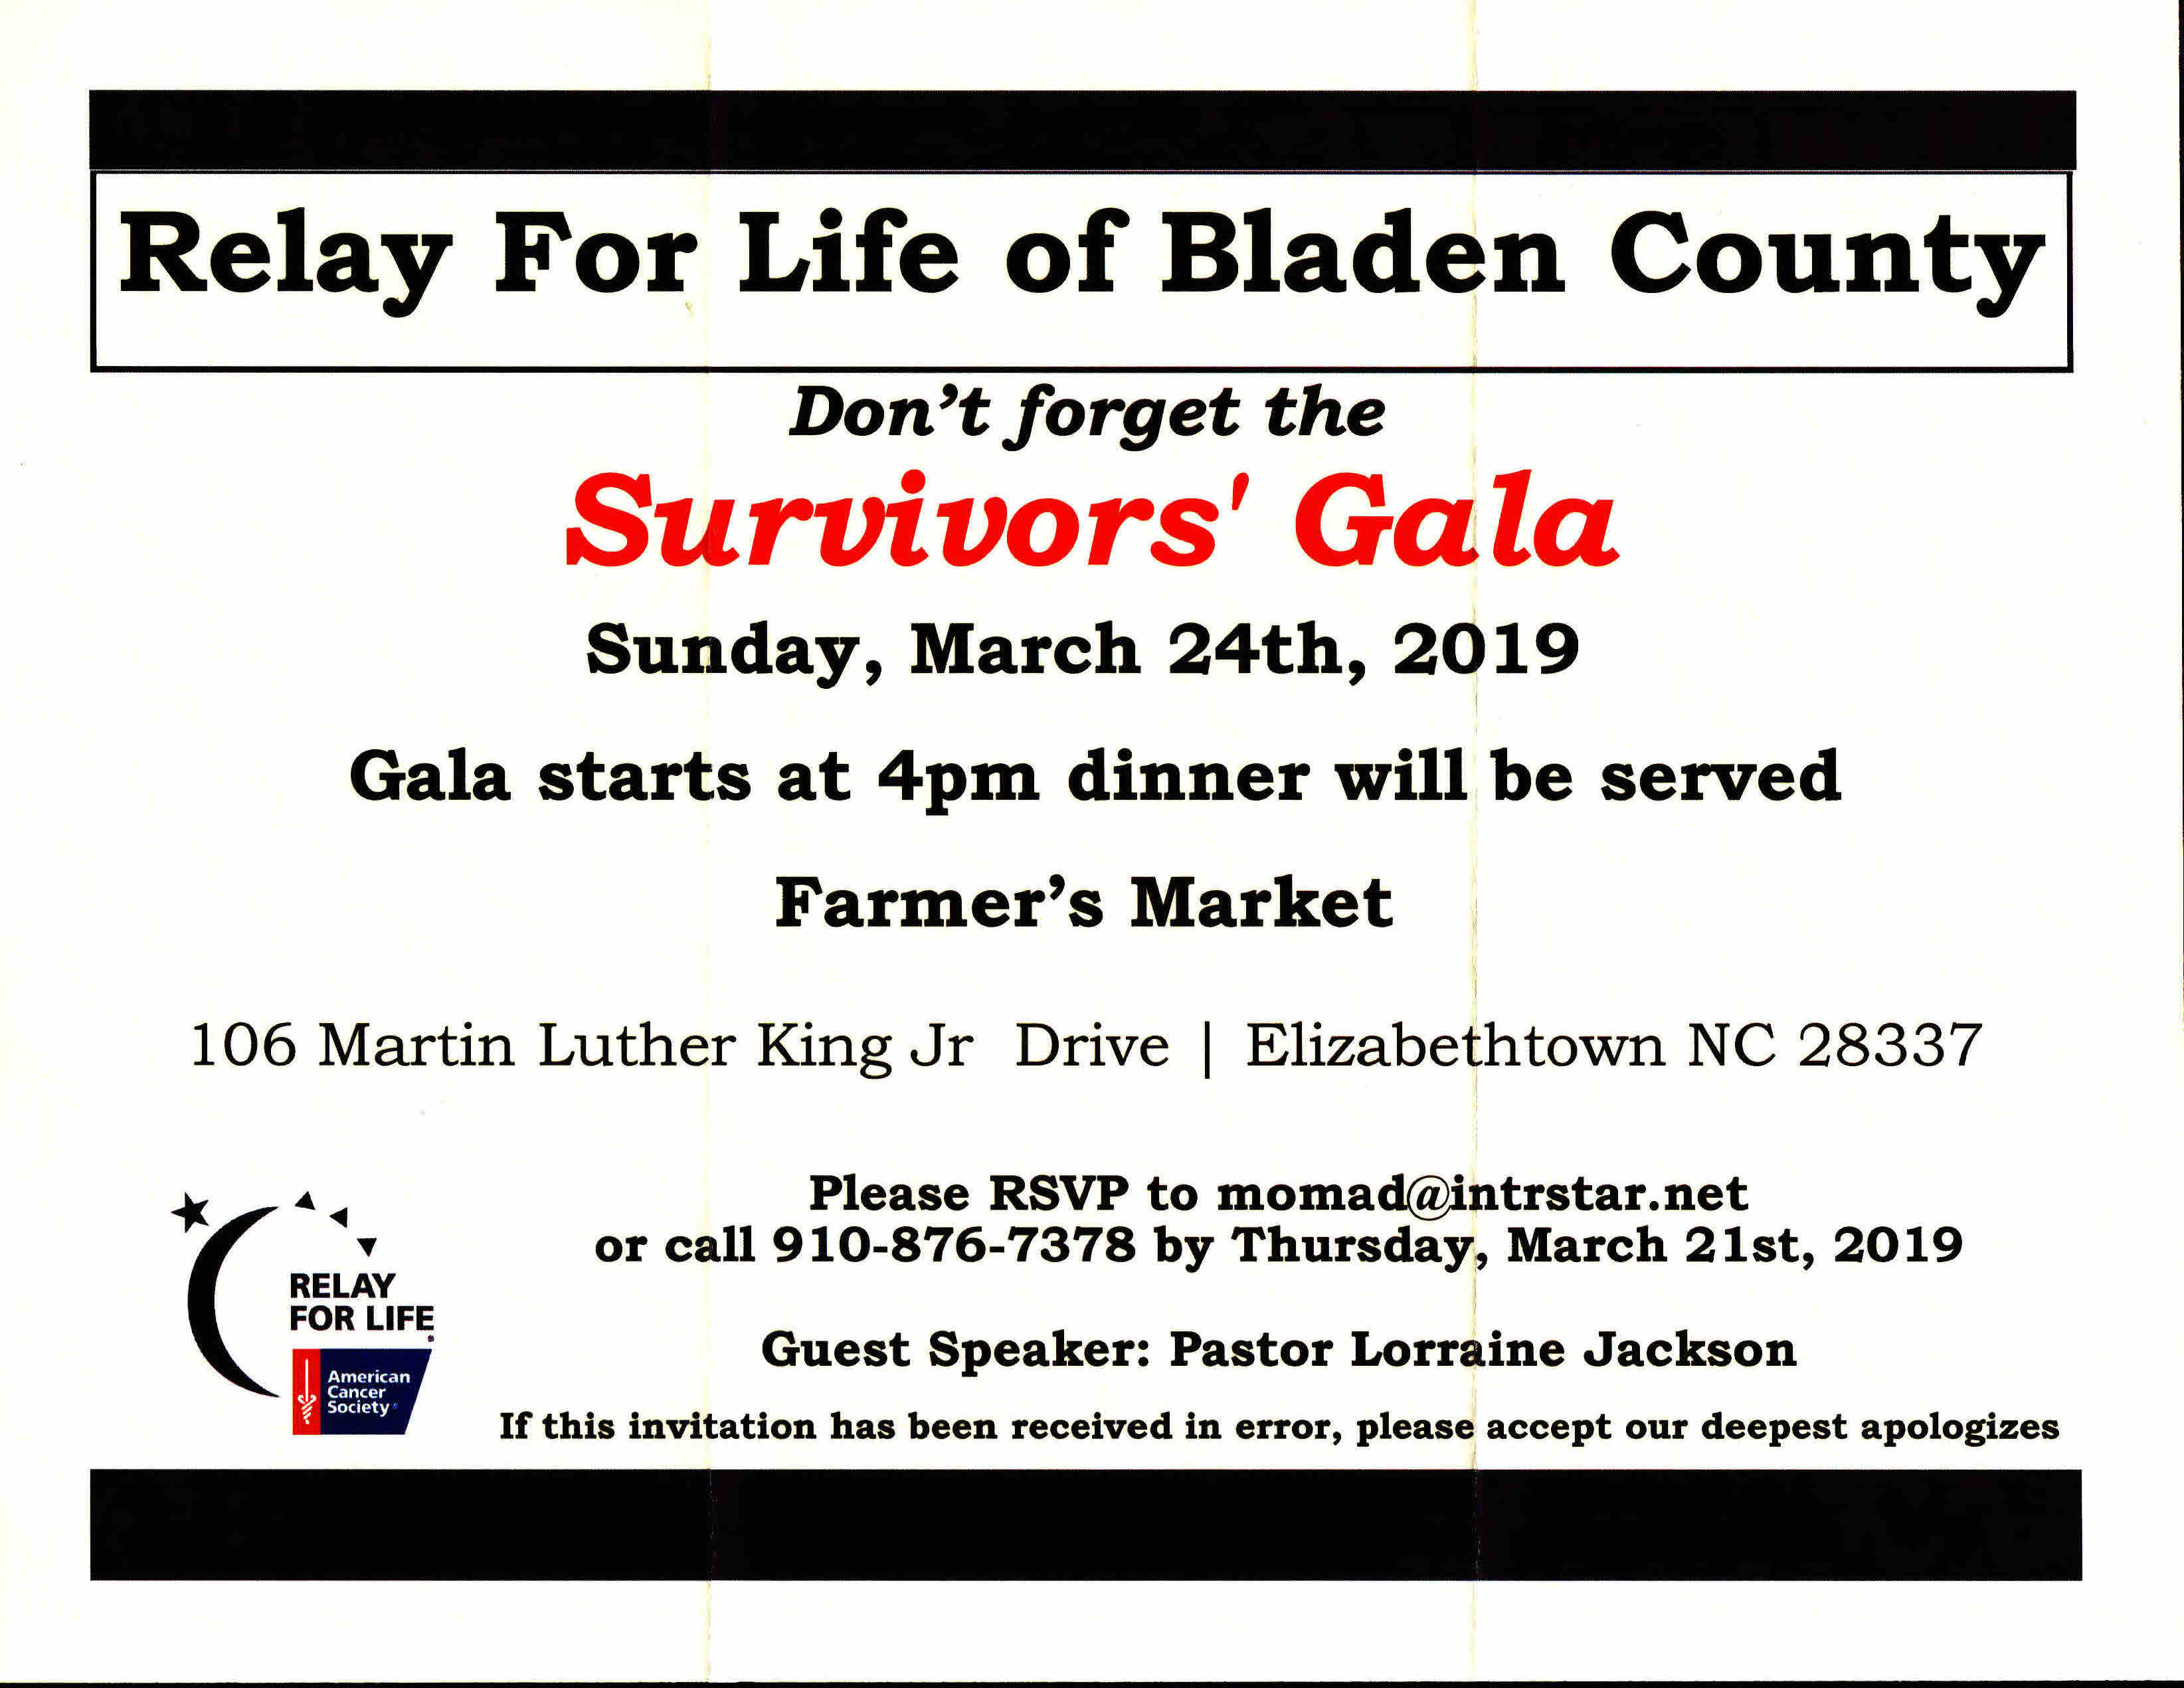 Relay for Life gala